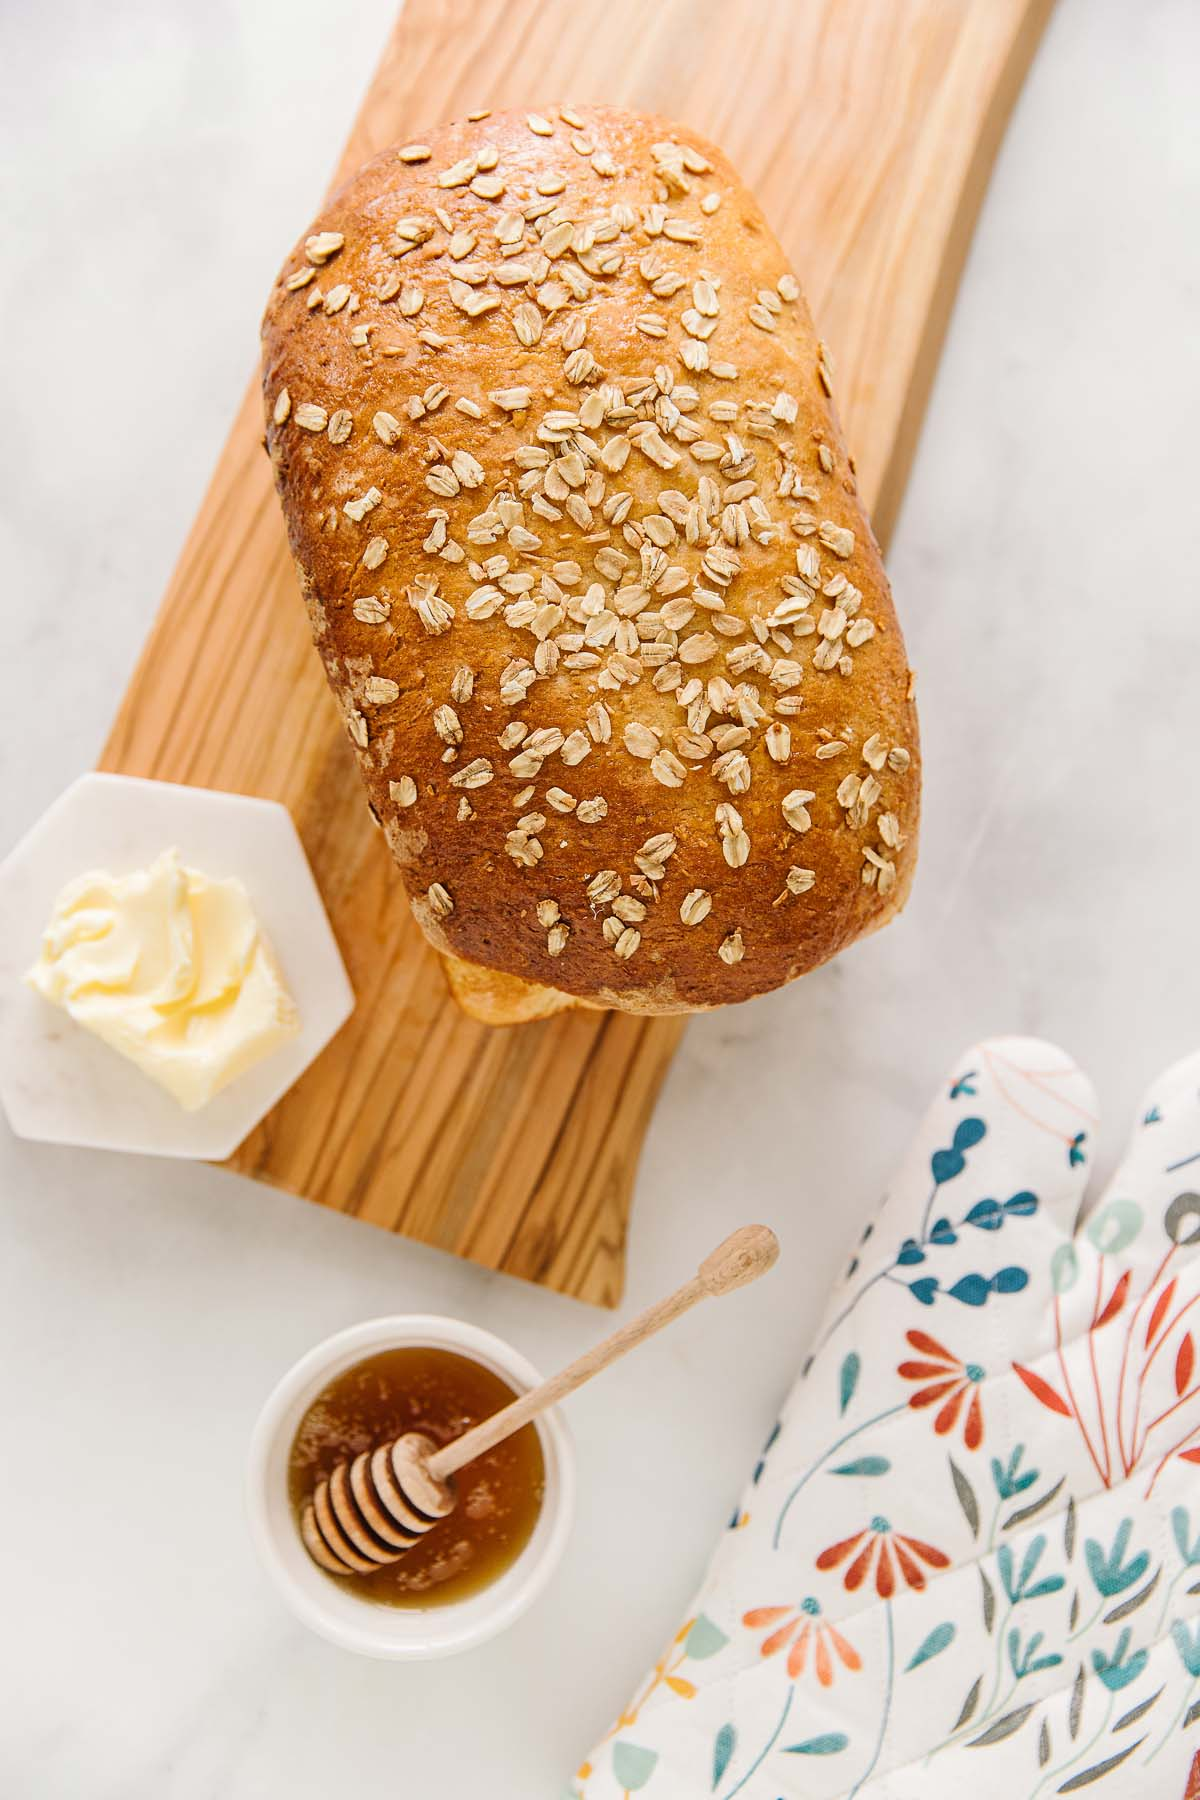 A honey oatmeal bread loaf on a wooden plank with a plate of butter and bowl of honey and a flowered oven mitt.